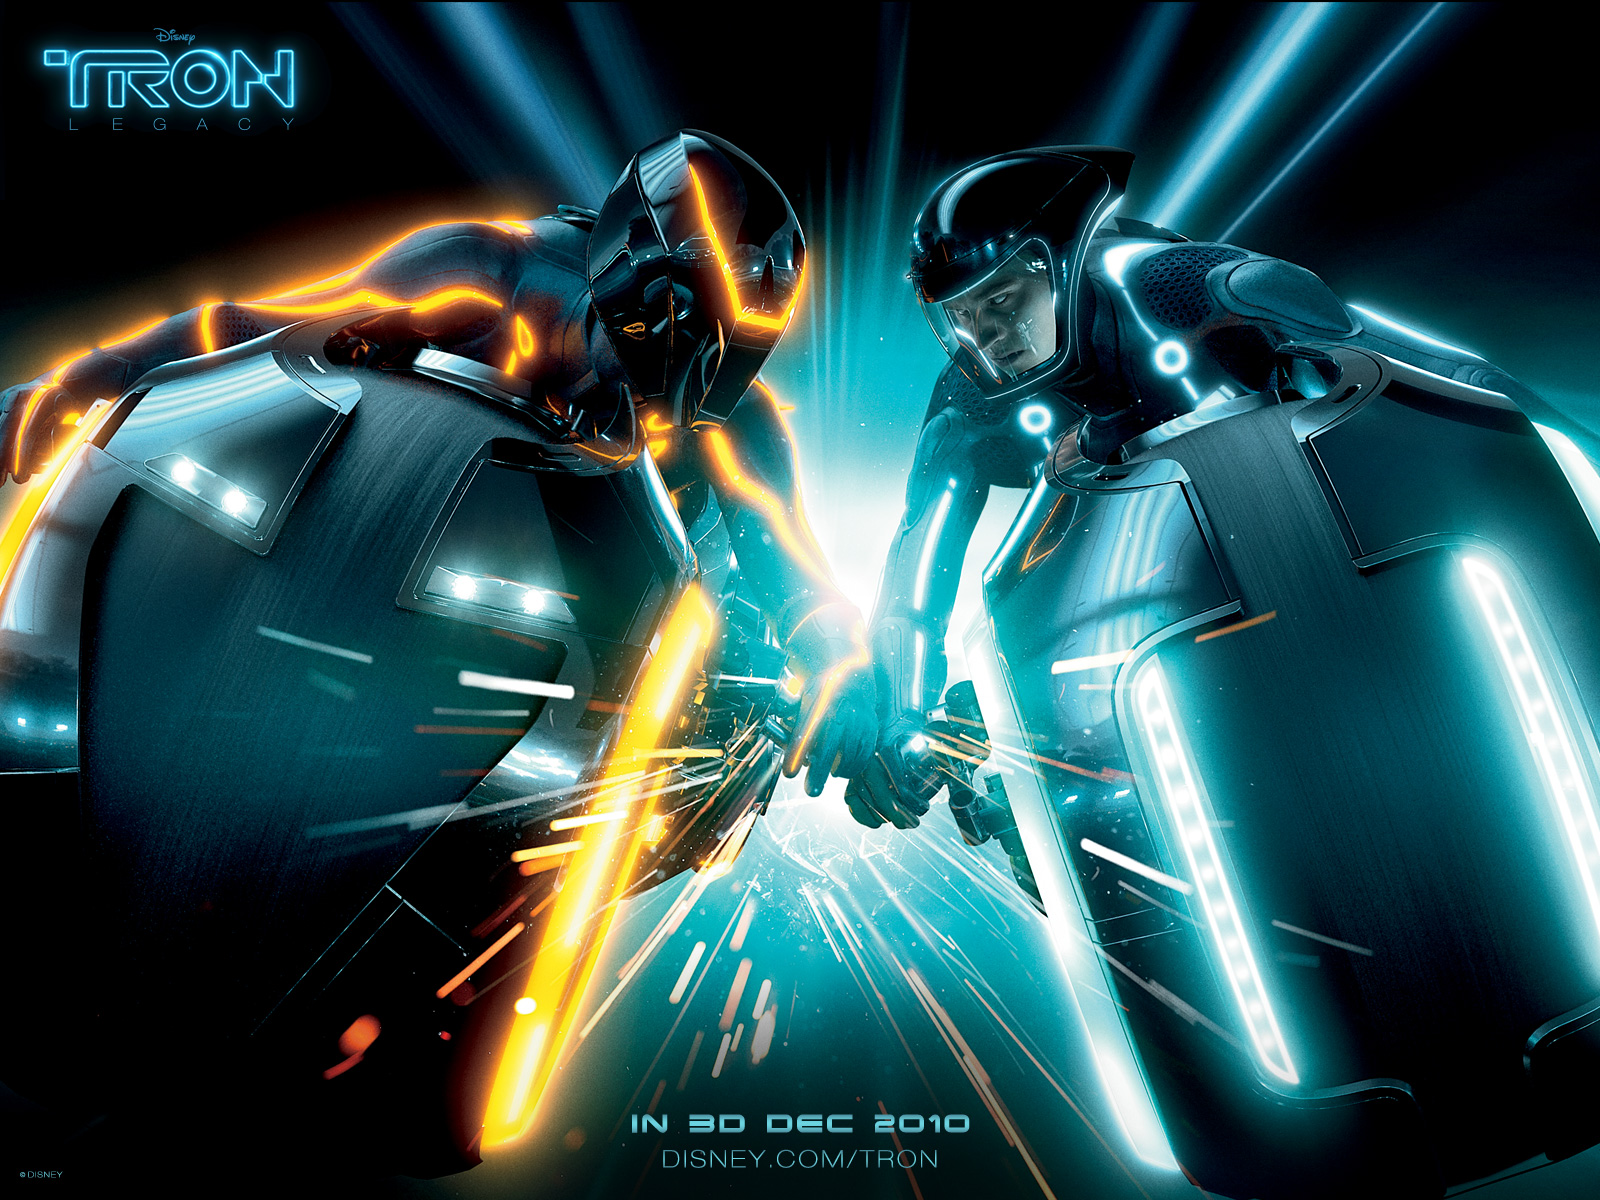 Sam Flynn Crashing Against Another Light Cycle From Disneys Tron Legacy Movie Wallpaper